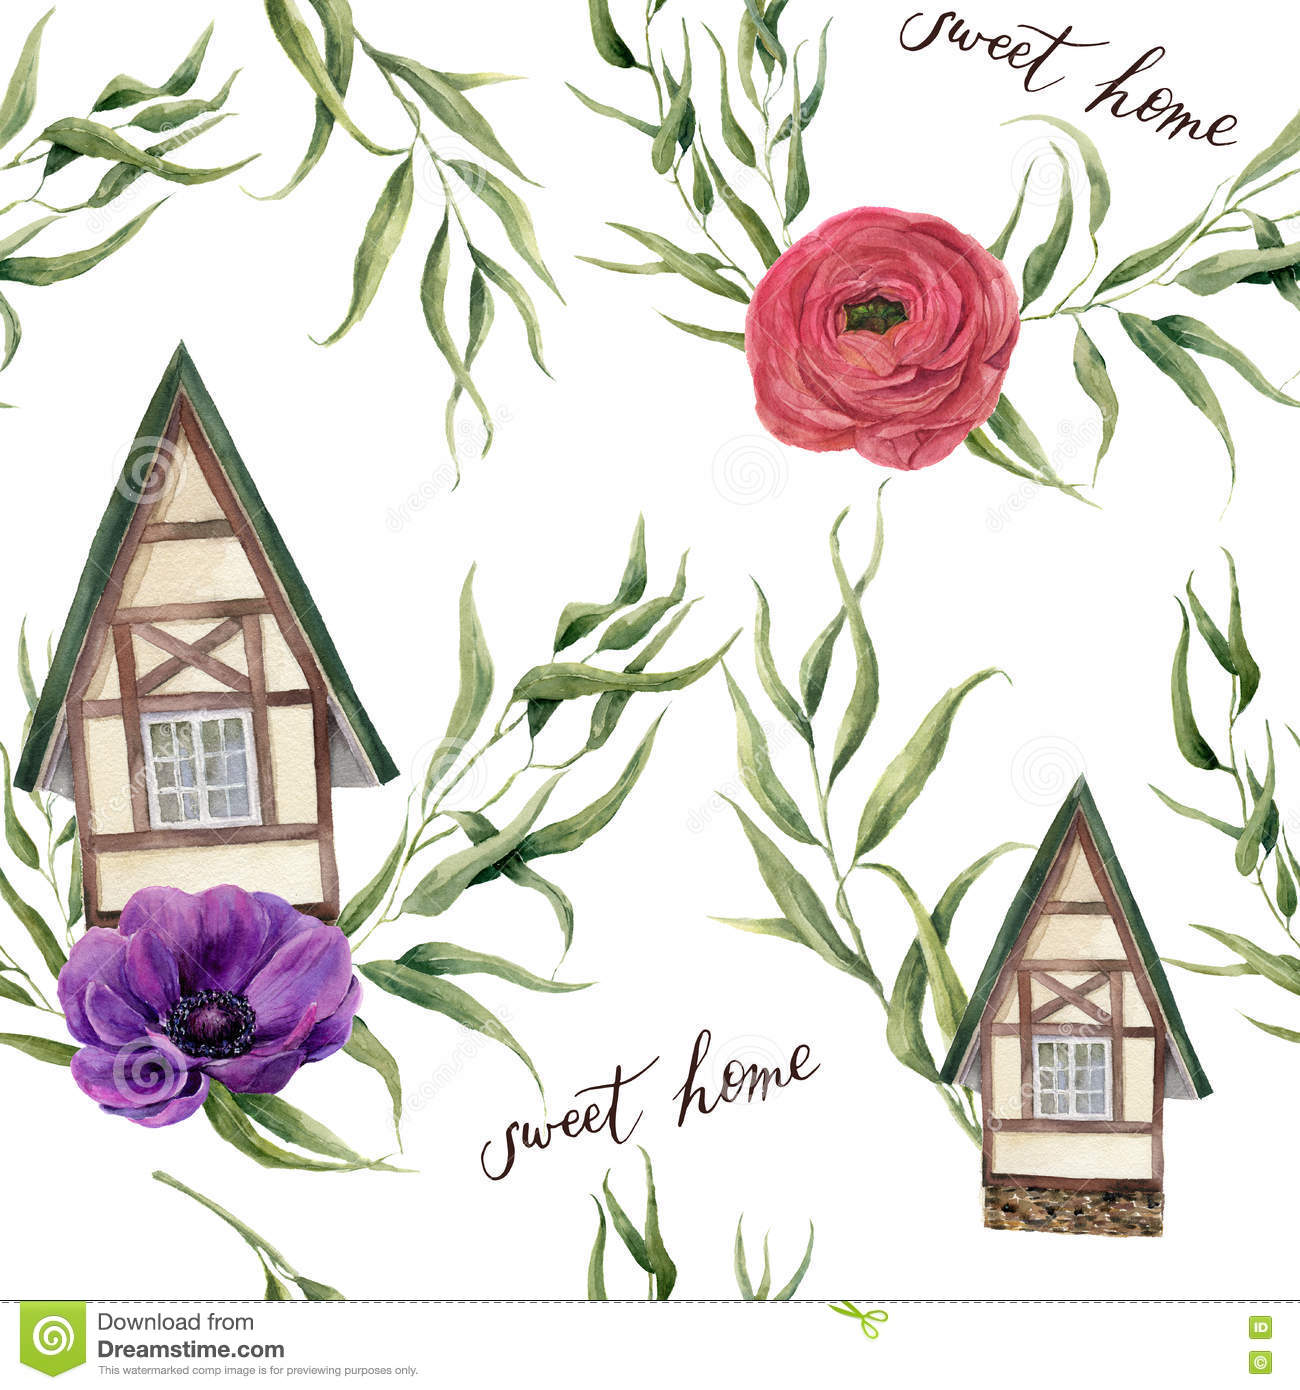 Sweet Home Watercolor Seamless Pattern. Watercolor House In Alpine.